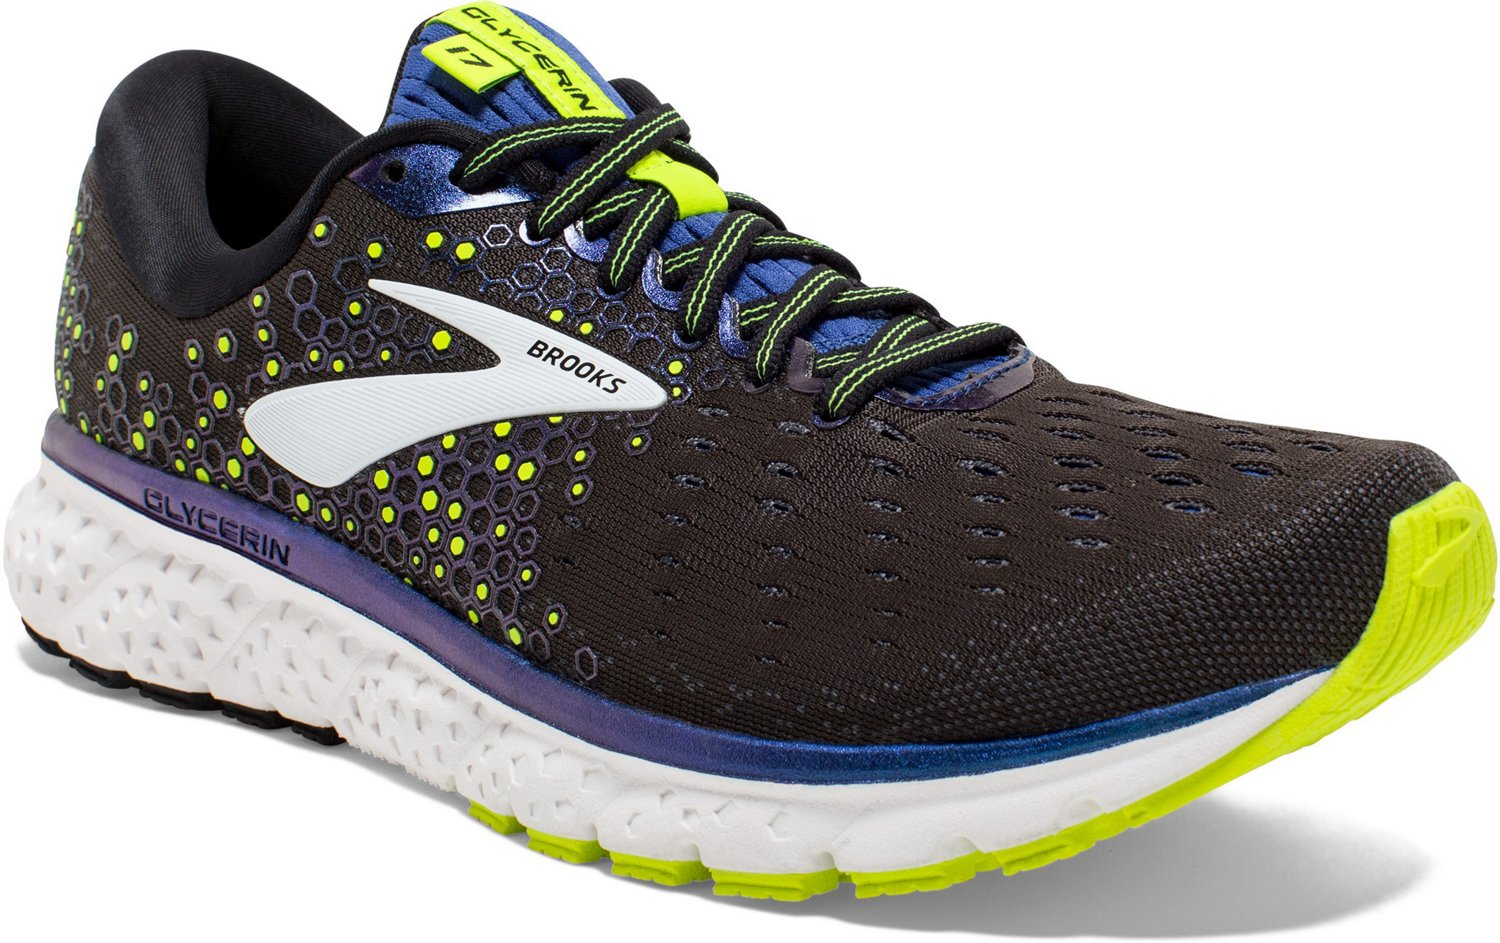 6024a6f9e90eb Brooks Men s Glycerin 17 Road Running Shoes